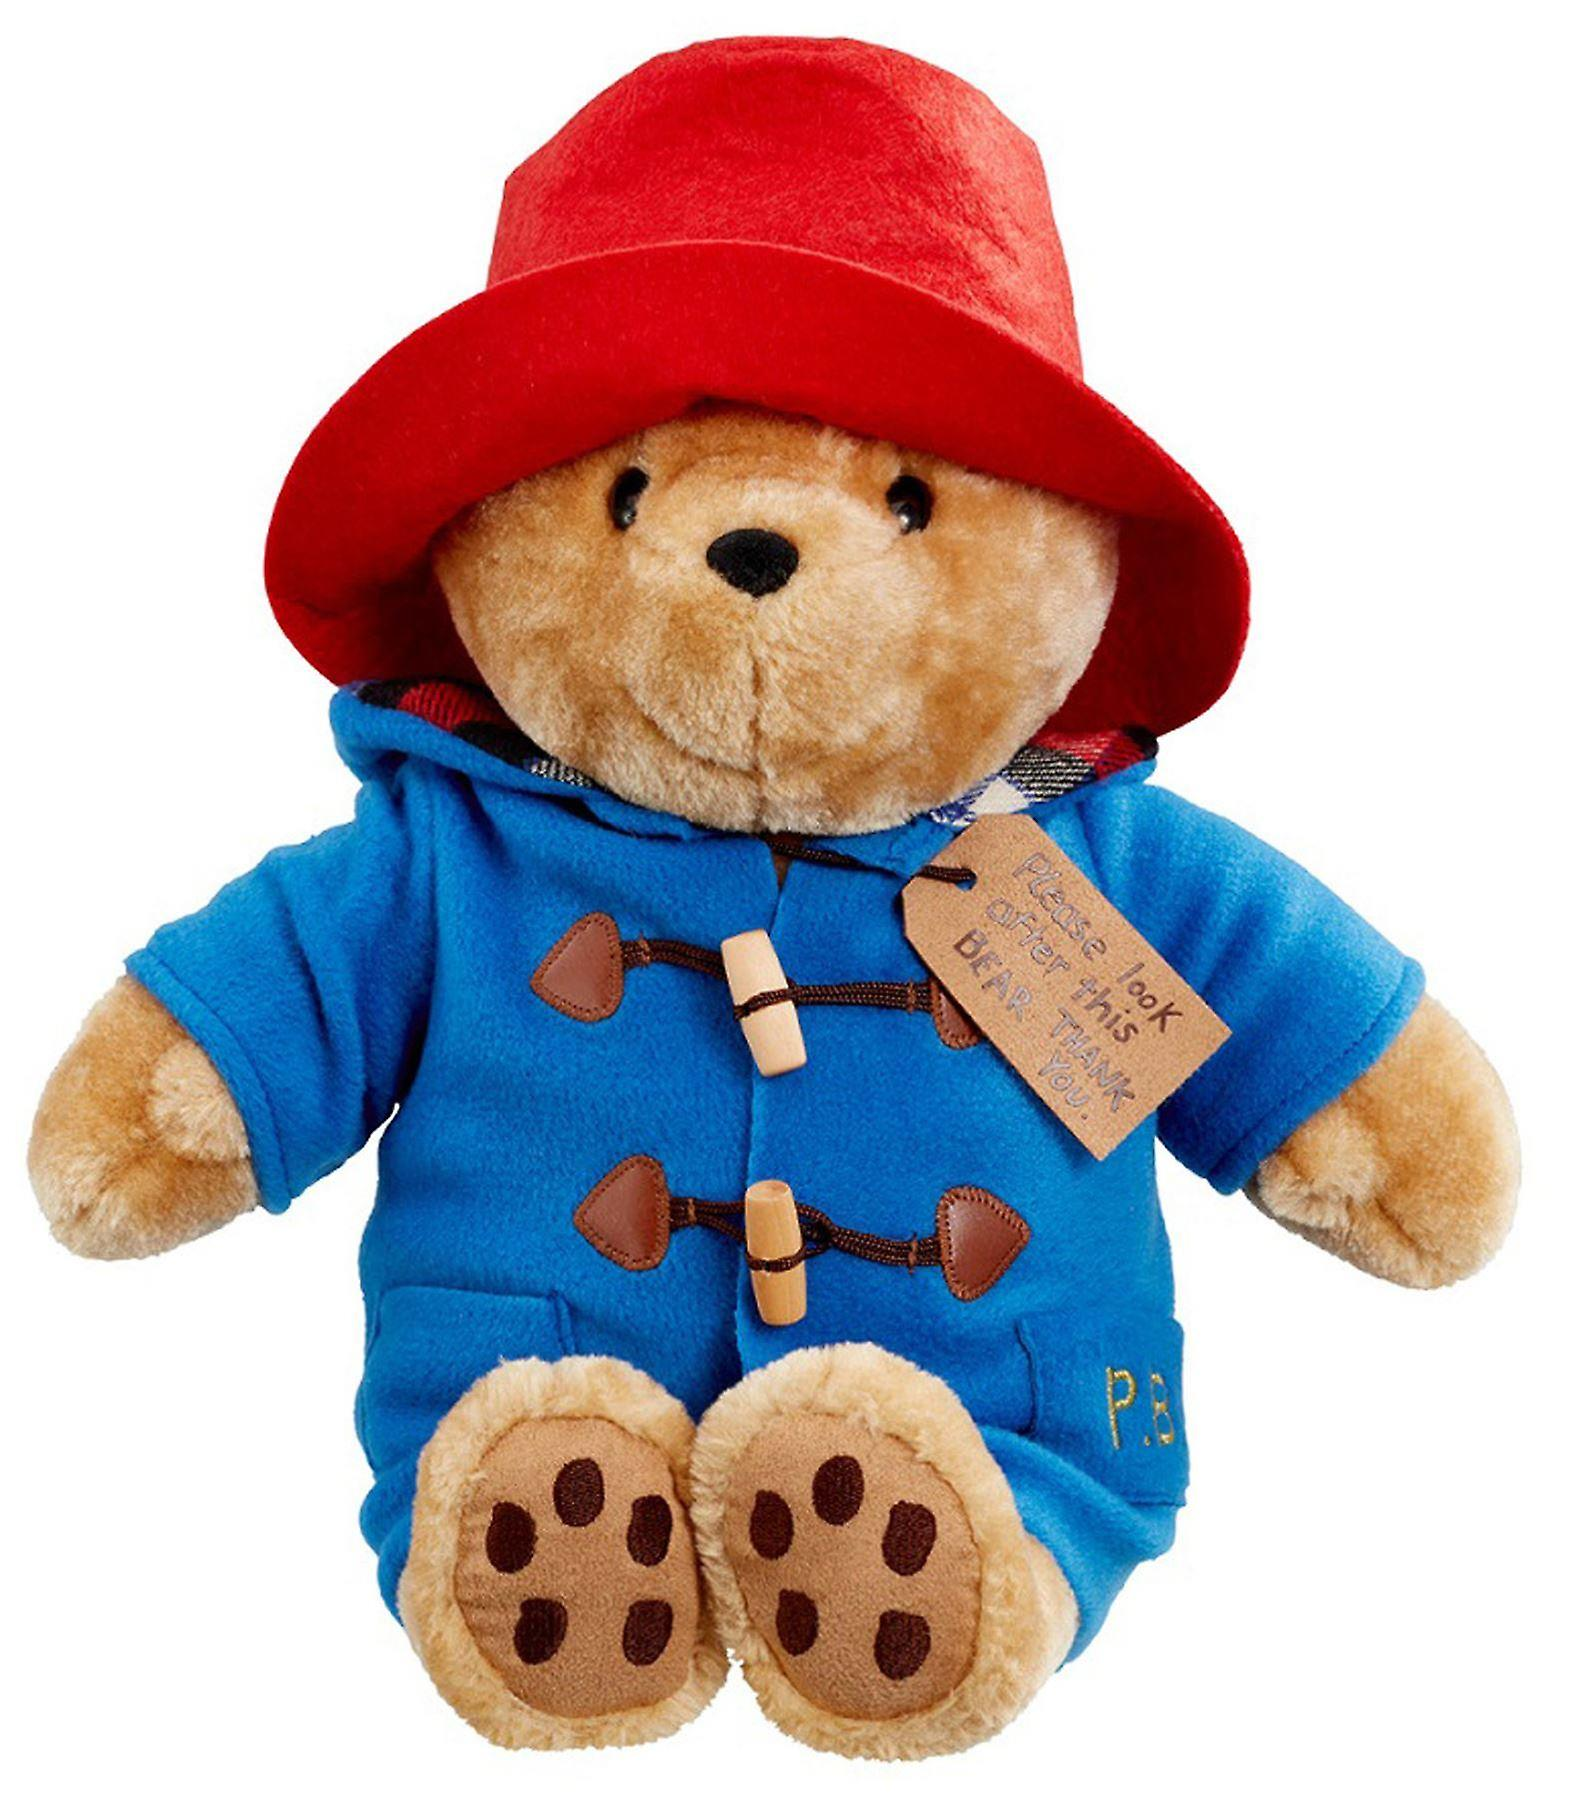 Rainbow designar stora gosiga klassiska Paddington Bear